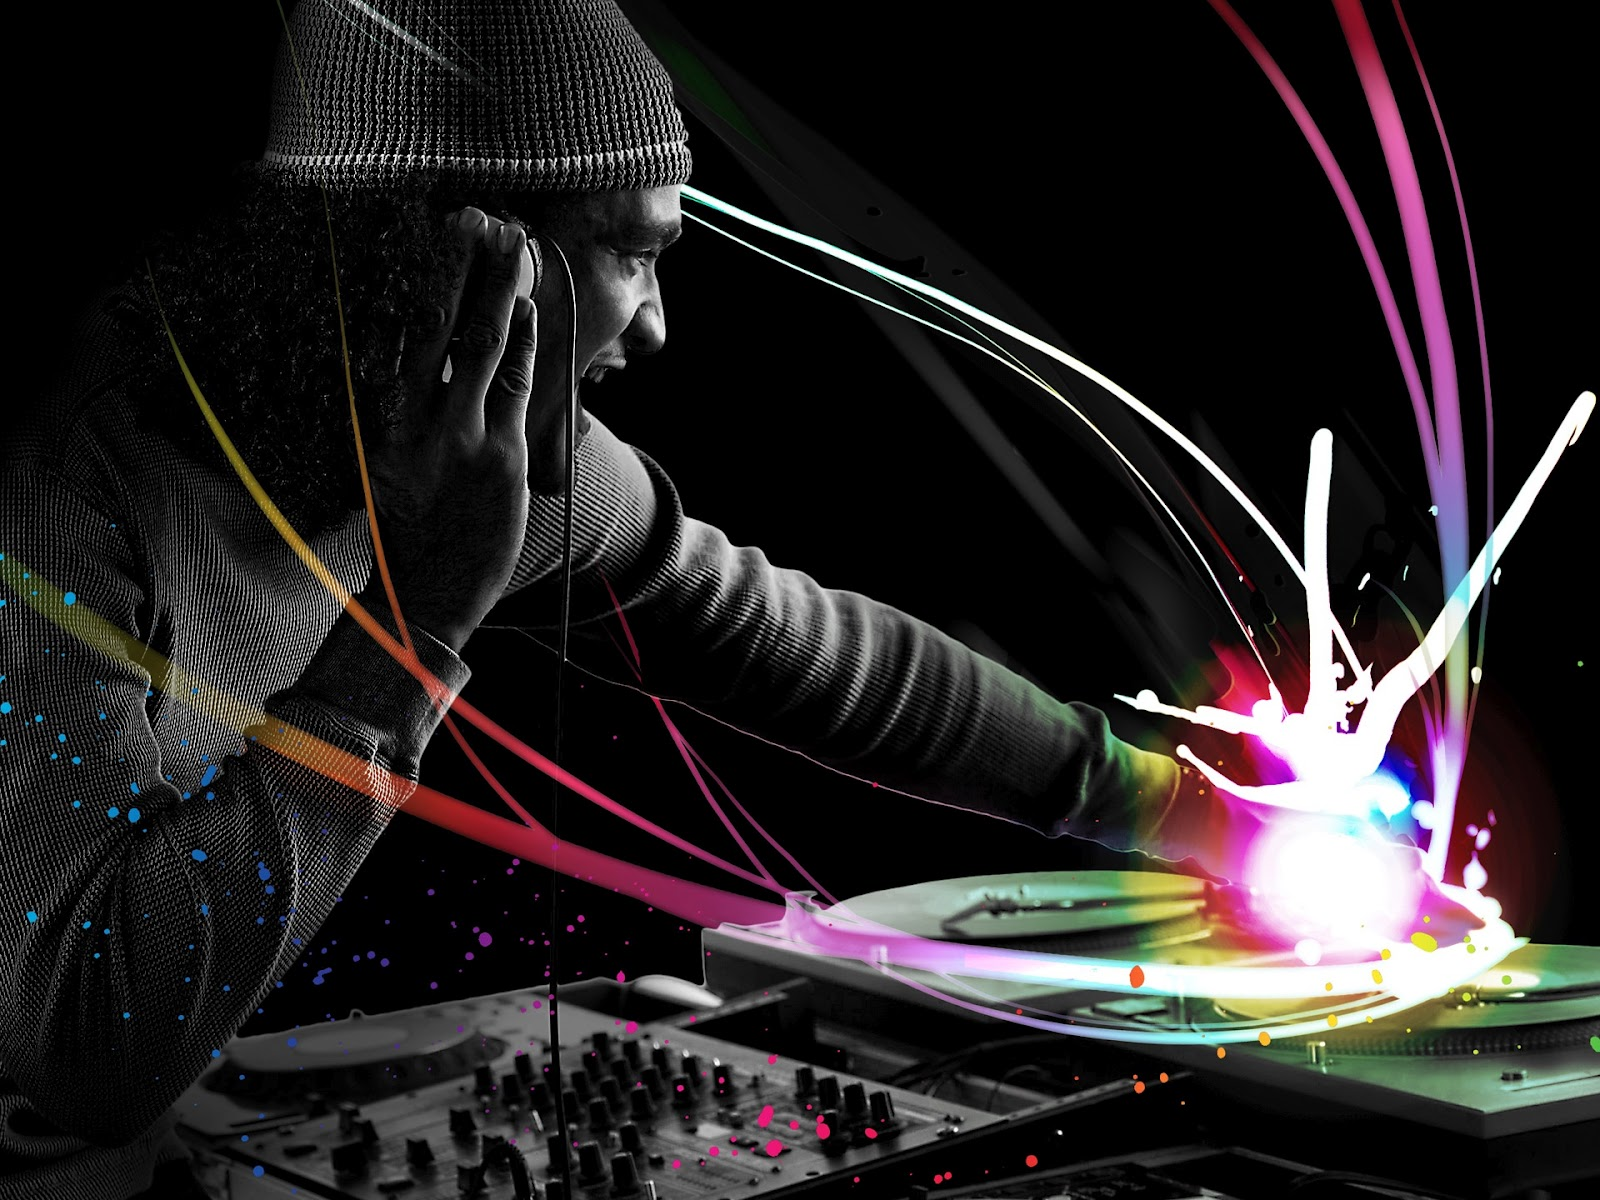 10 Best House Music Dj Wallpaper Full Hd 1080p For Pc: DJ Songs & HD Wallpapers